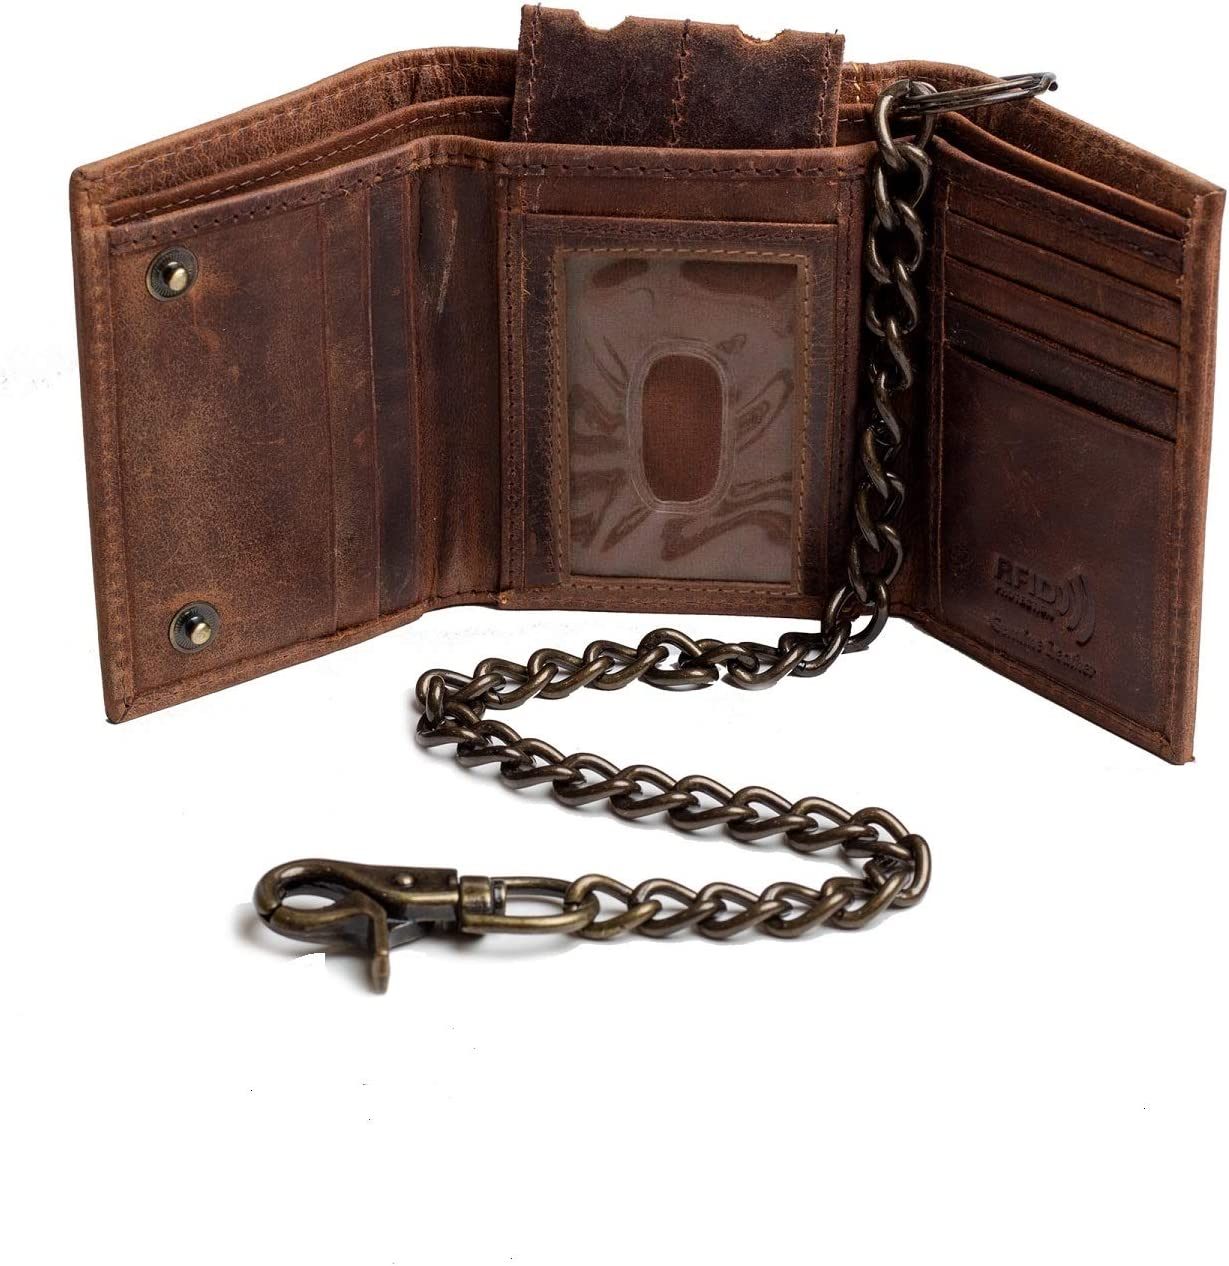 Bikers Trifold Leather Chain wallet for Men RFID safe Crazy Horse Vintage Brown Snake Texture Black J112 (Crazy Horse J112 with Chain)